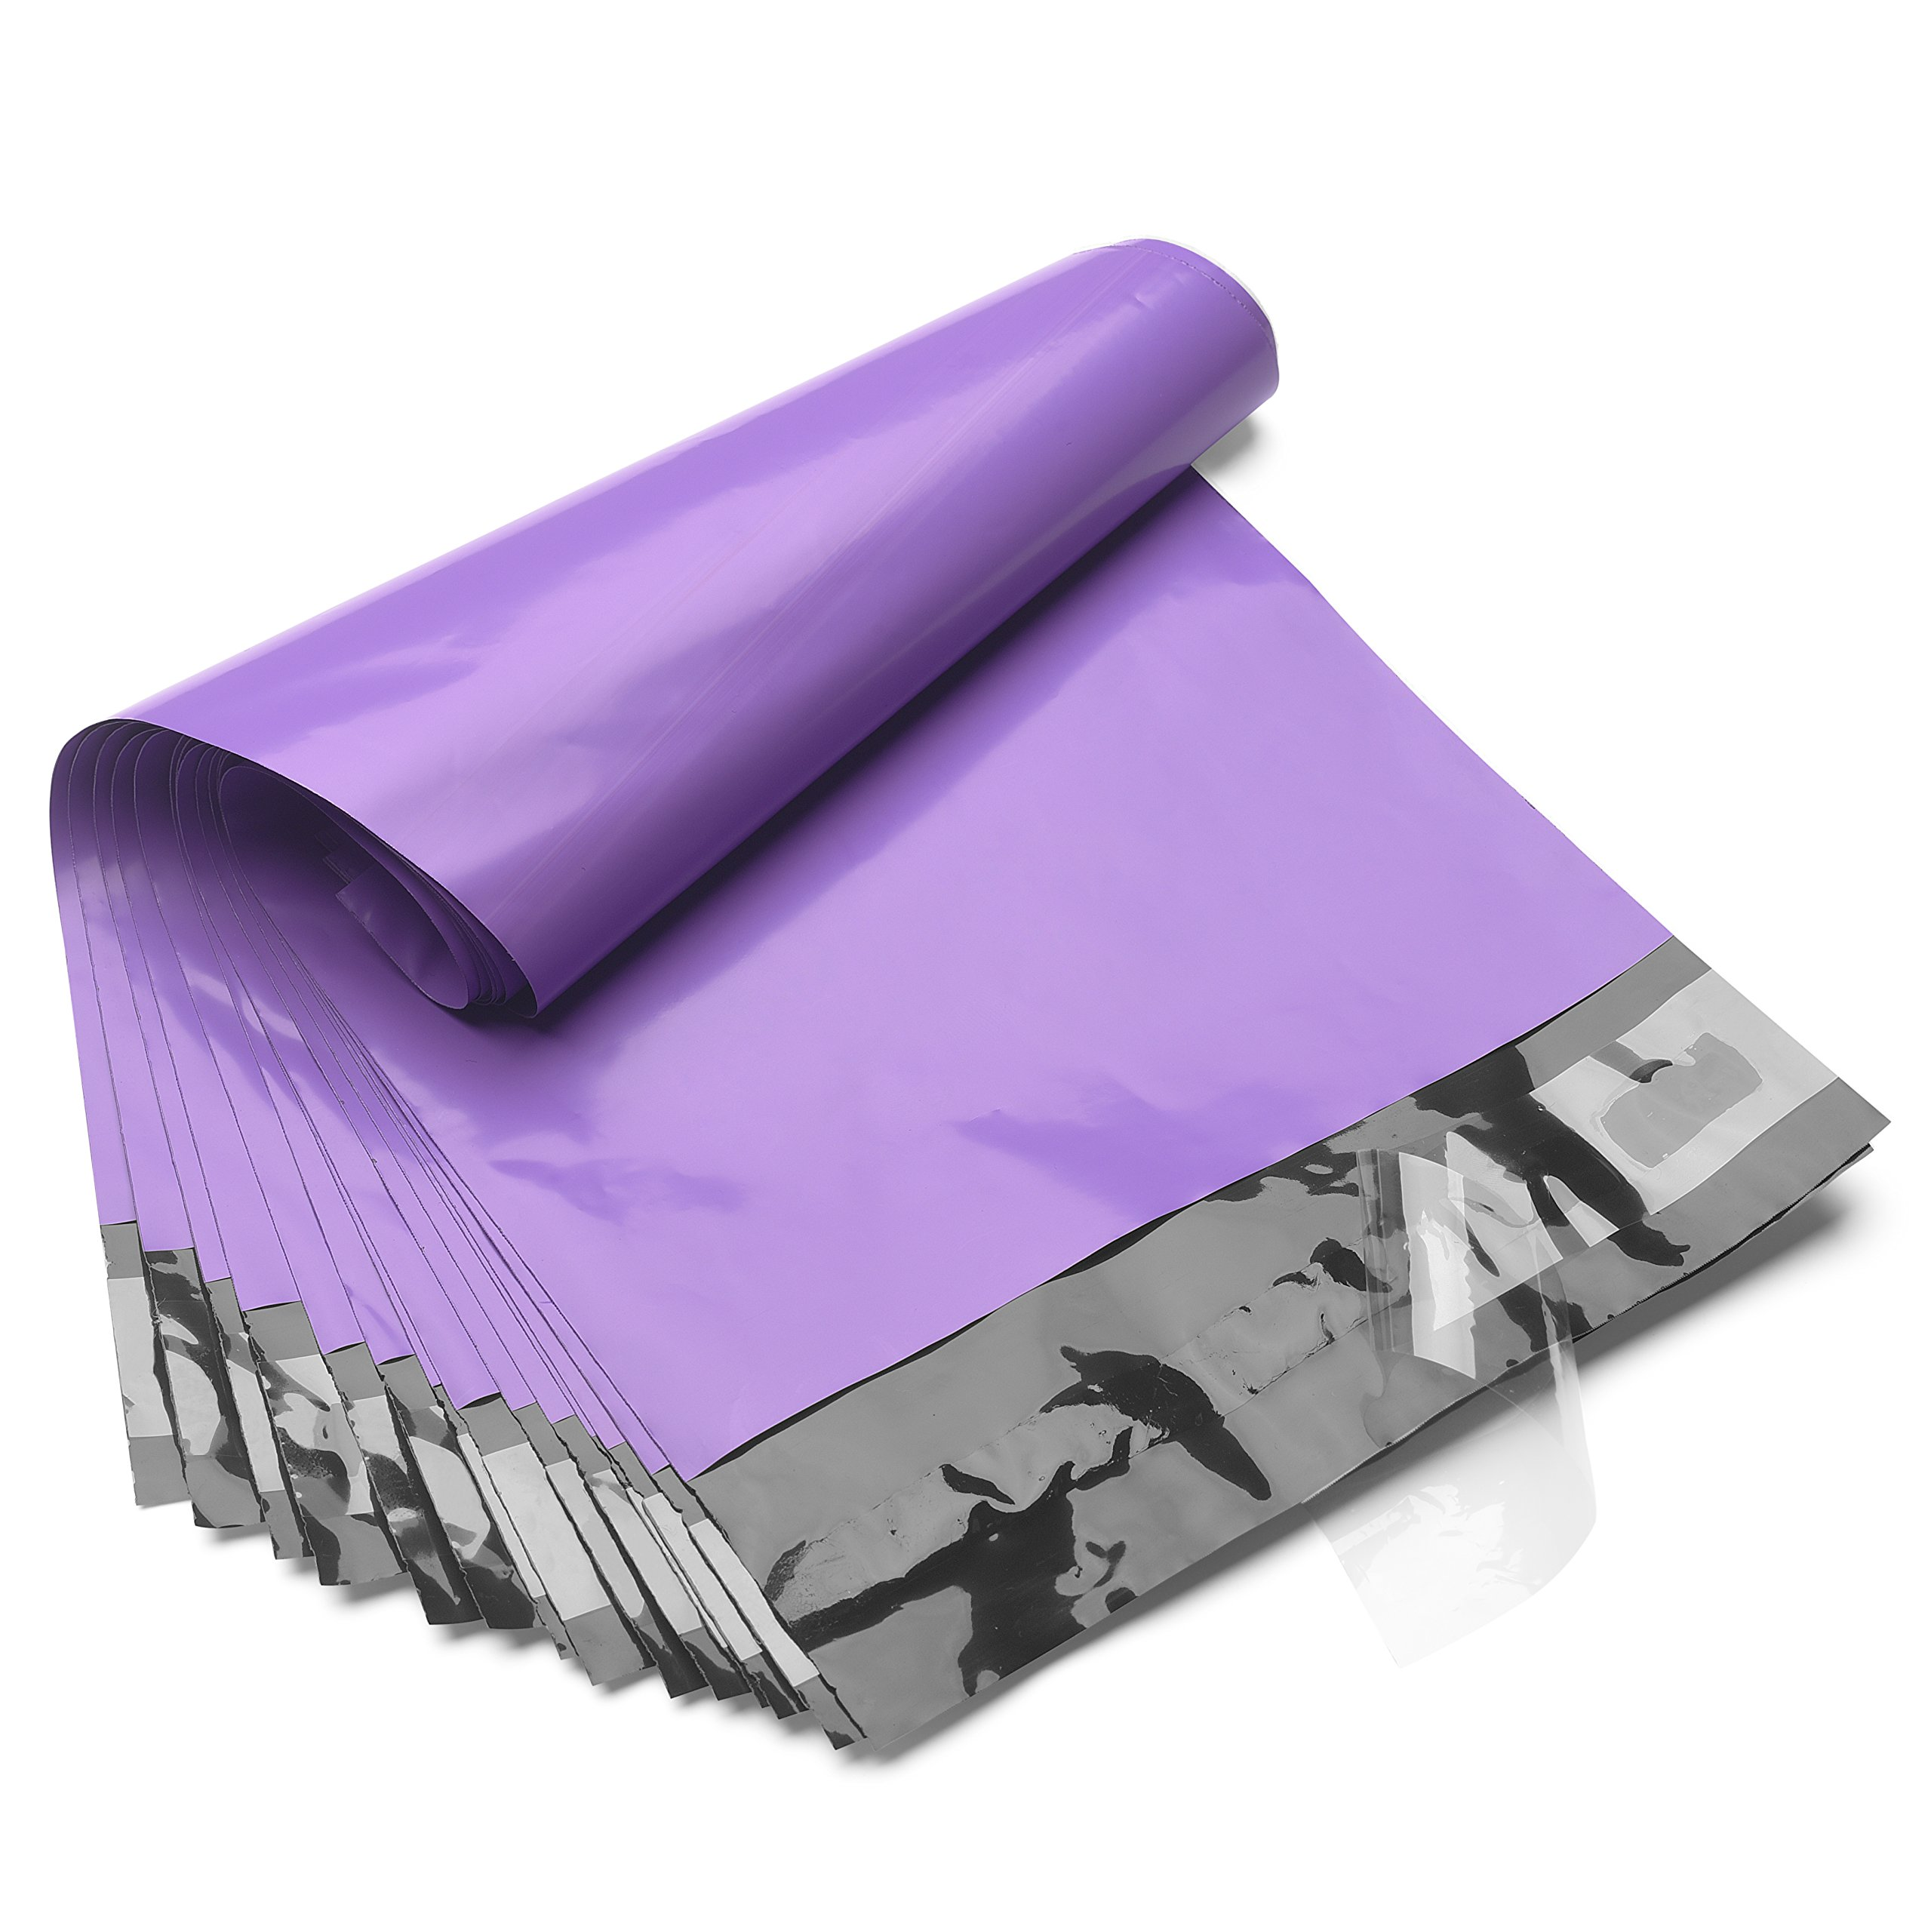 FU GLOBAL 14.5x19 Poly Mailers Shipping Envelops Boutique Custom Bags Enhanced Durability Multipurpose Envelopes Keep Items Safe & Protected(Purple,100PCS)